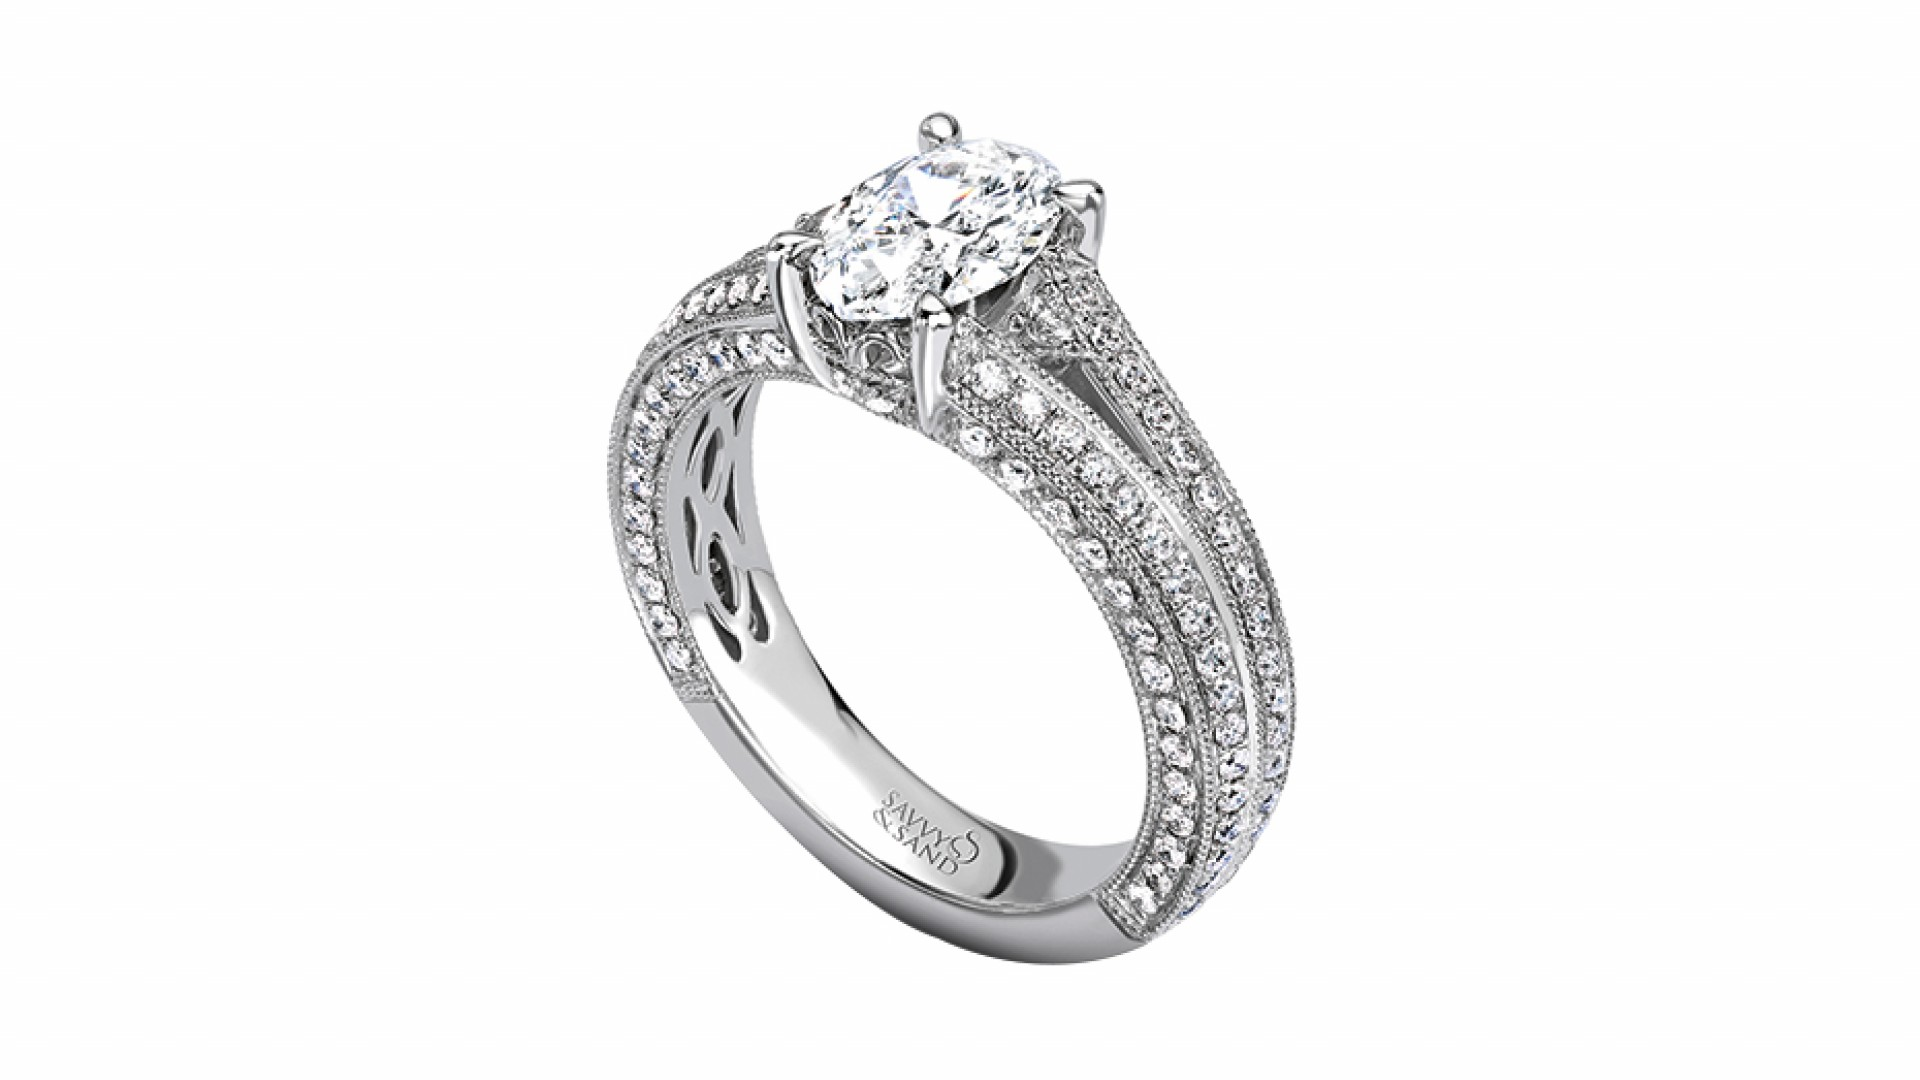 Five of the best engagement rings